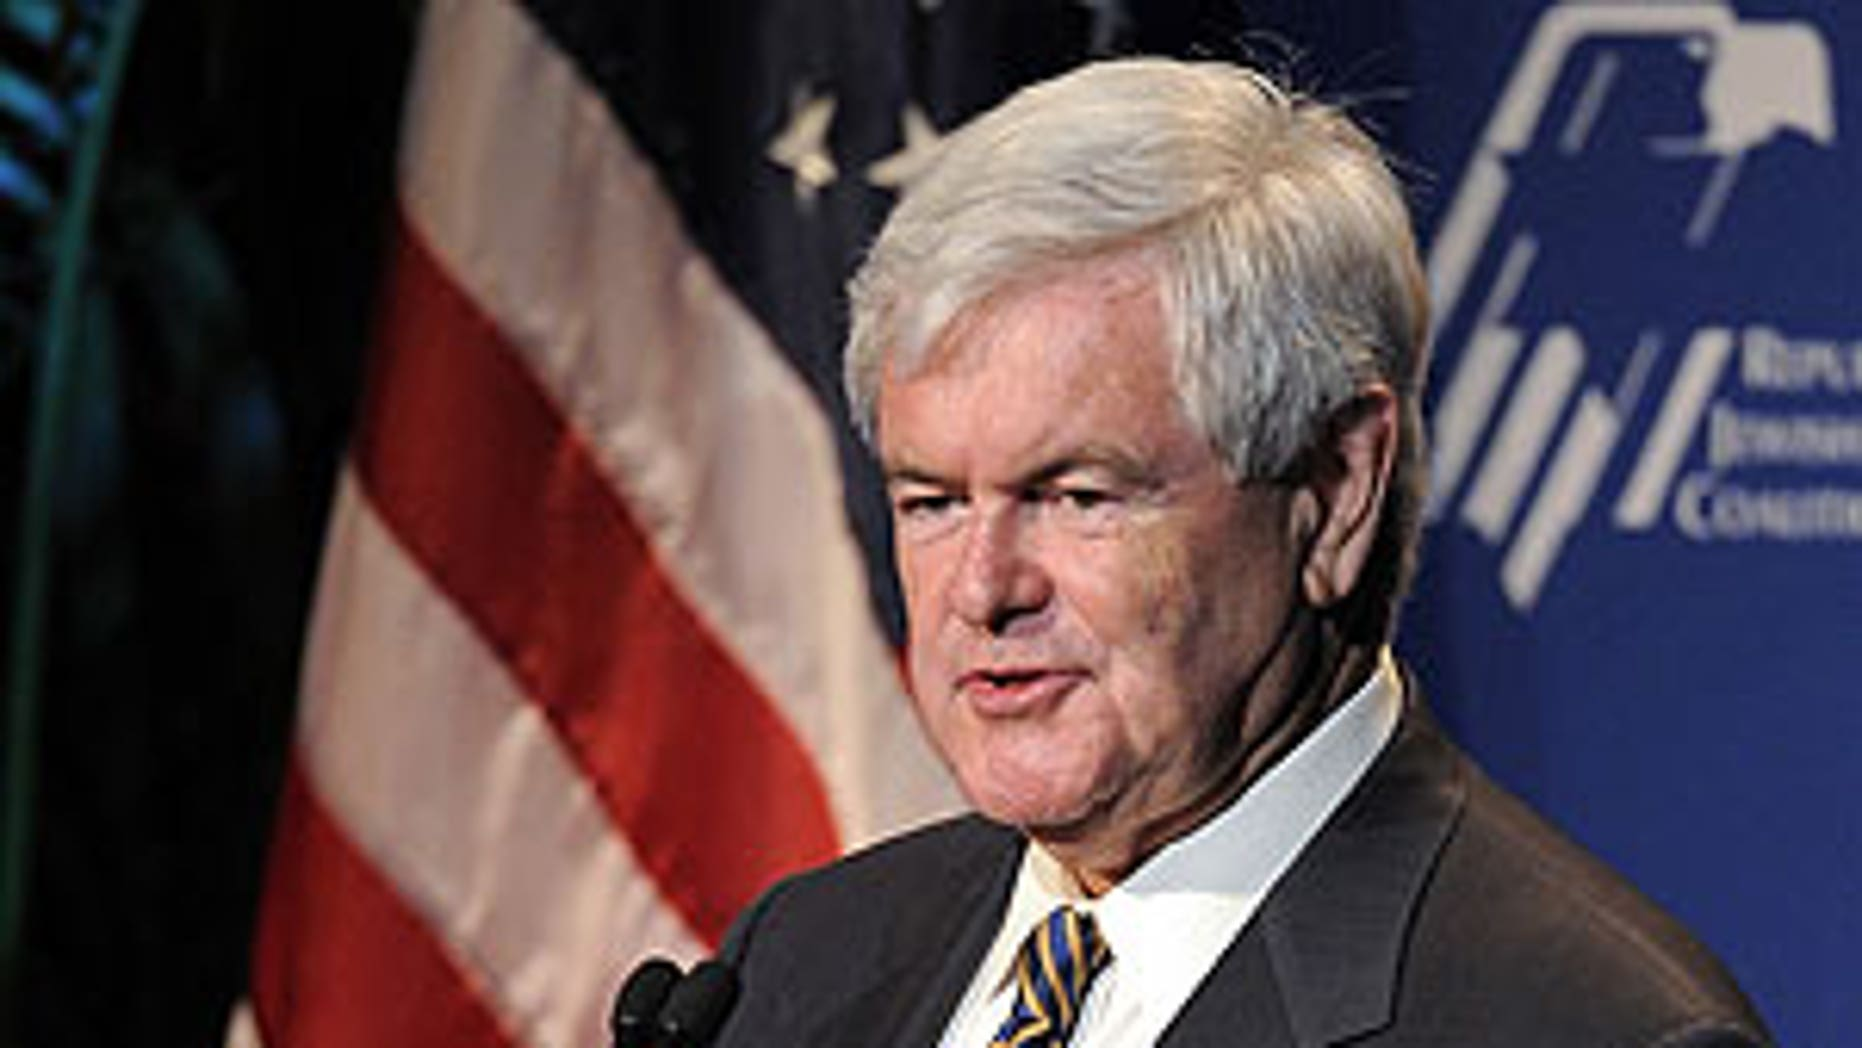 Newt Gingrich speaks to the Republican Jewish Coalition in Los Angeles